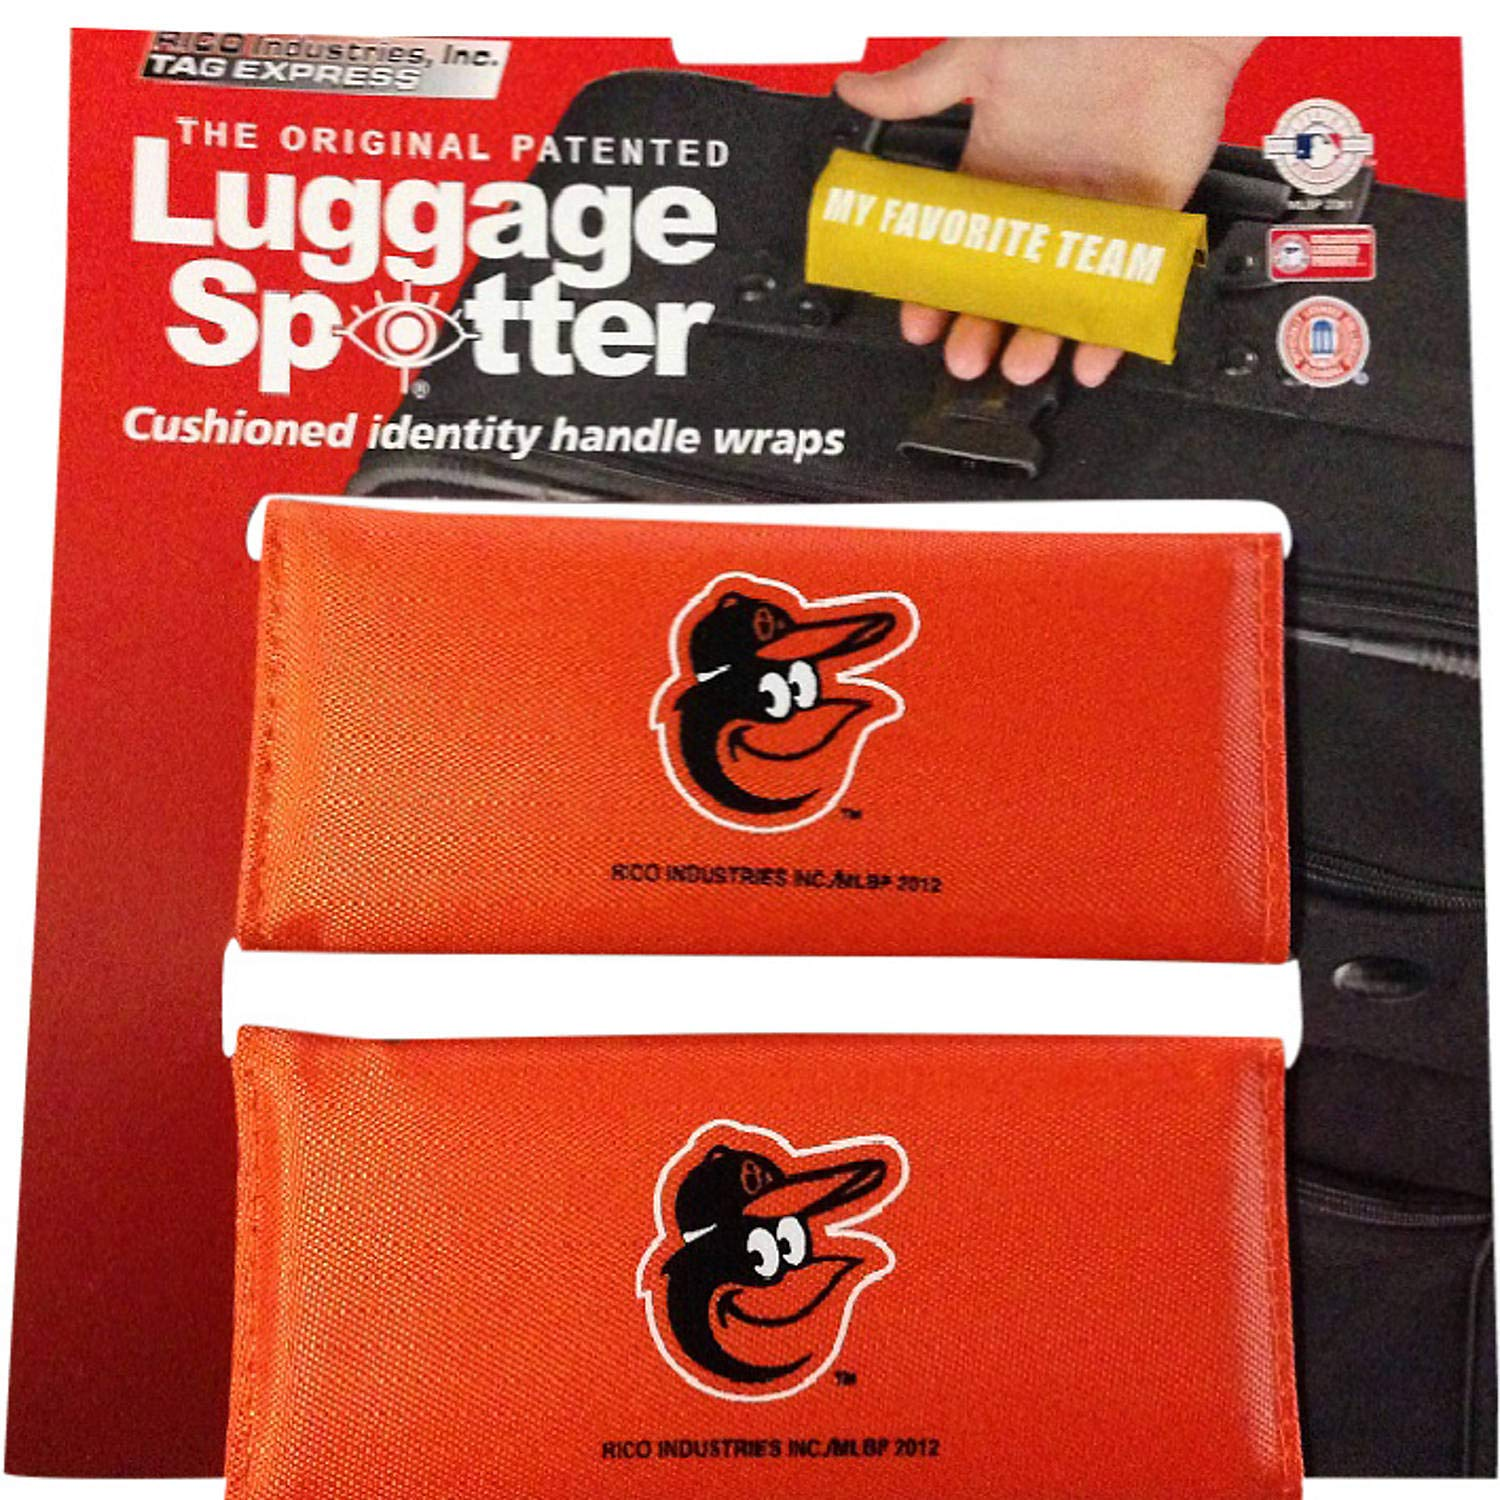 BUY ONE GET ONE FREE! ORIOLES Luggage Spotter Suitcase Handle Wrap Bag Tag Locator with I.D. Pocket (4-pack) - CLOSEOUT! SELLING FAST! China BALTORIOLES